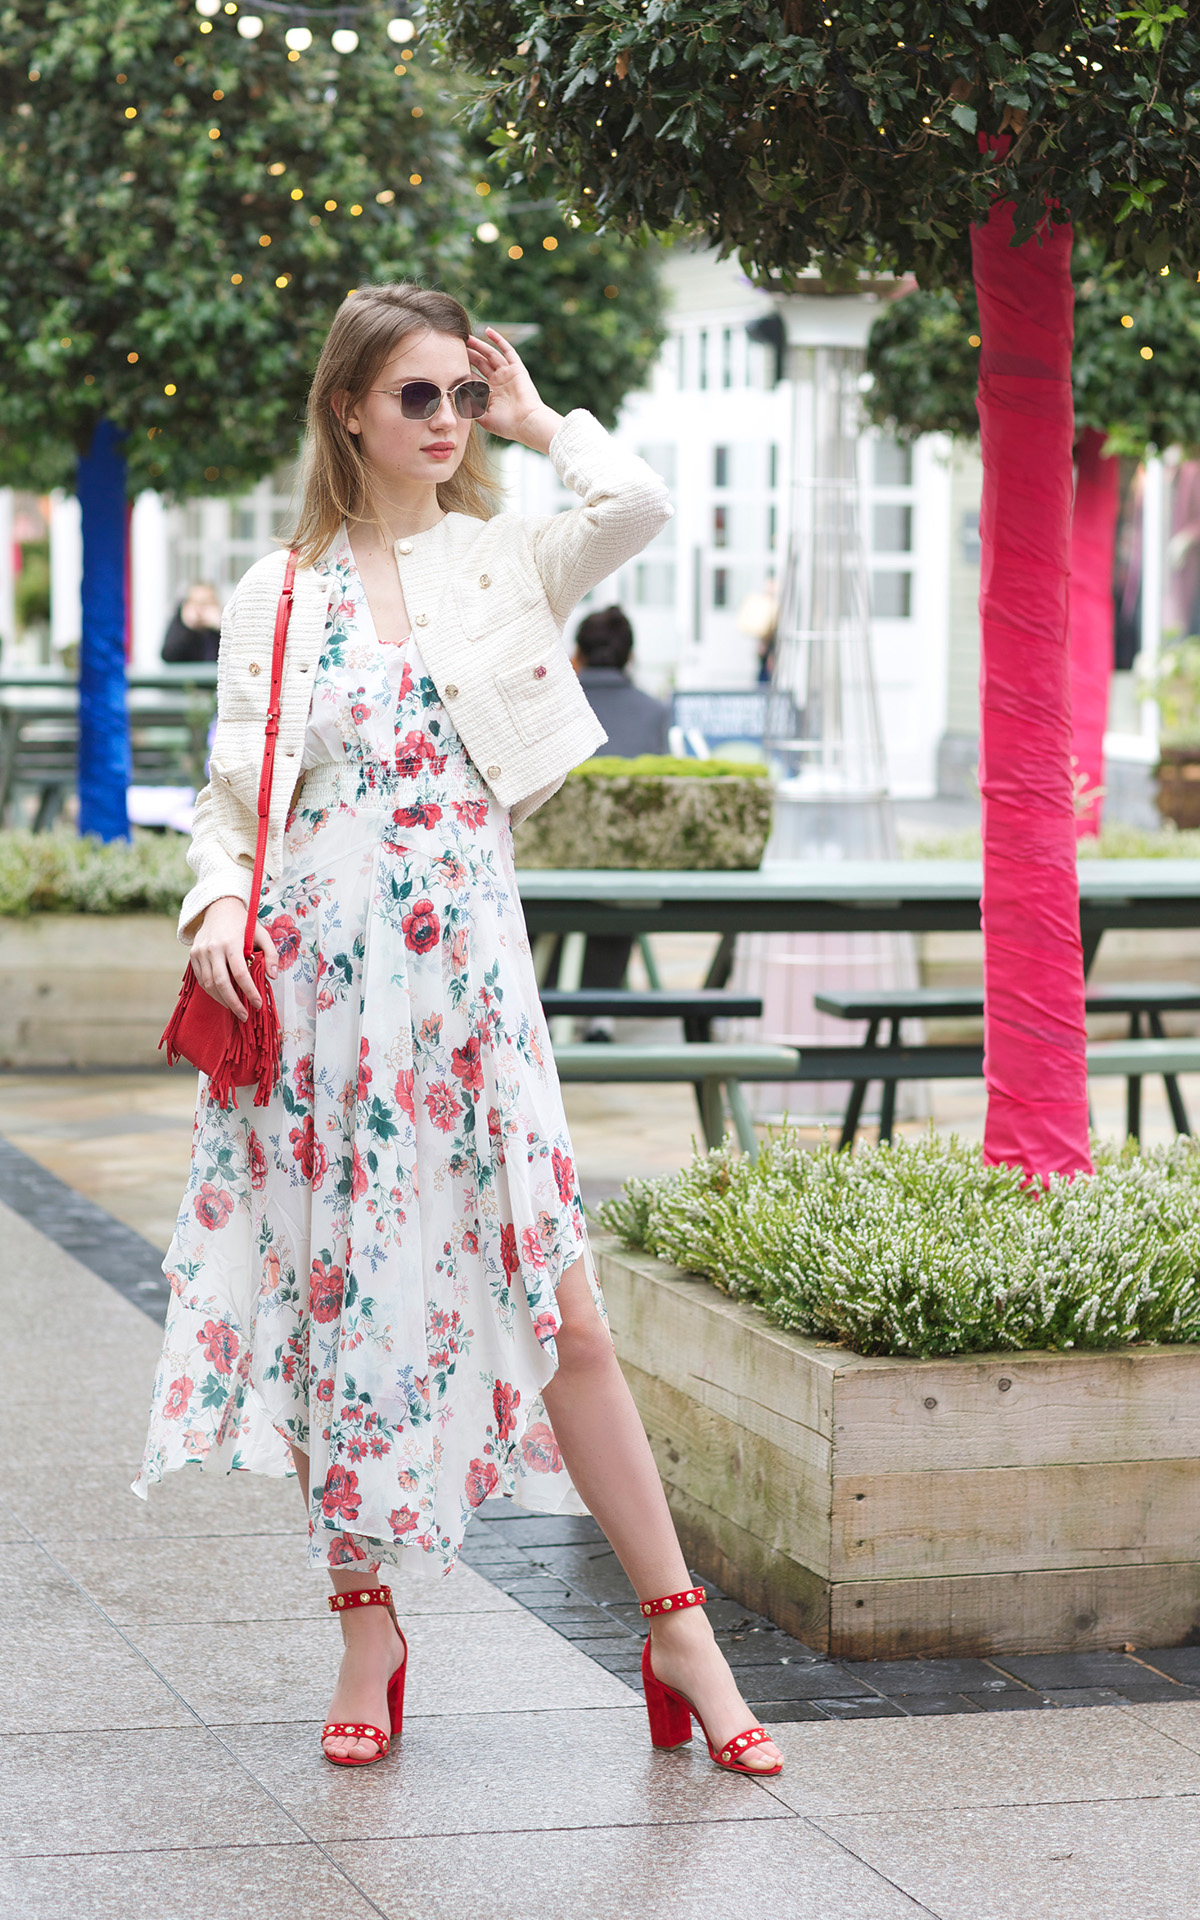 Spring floral dress at Kildare Village